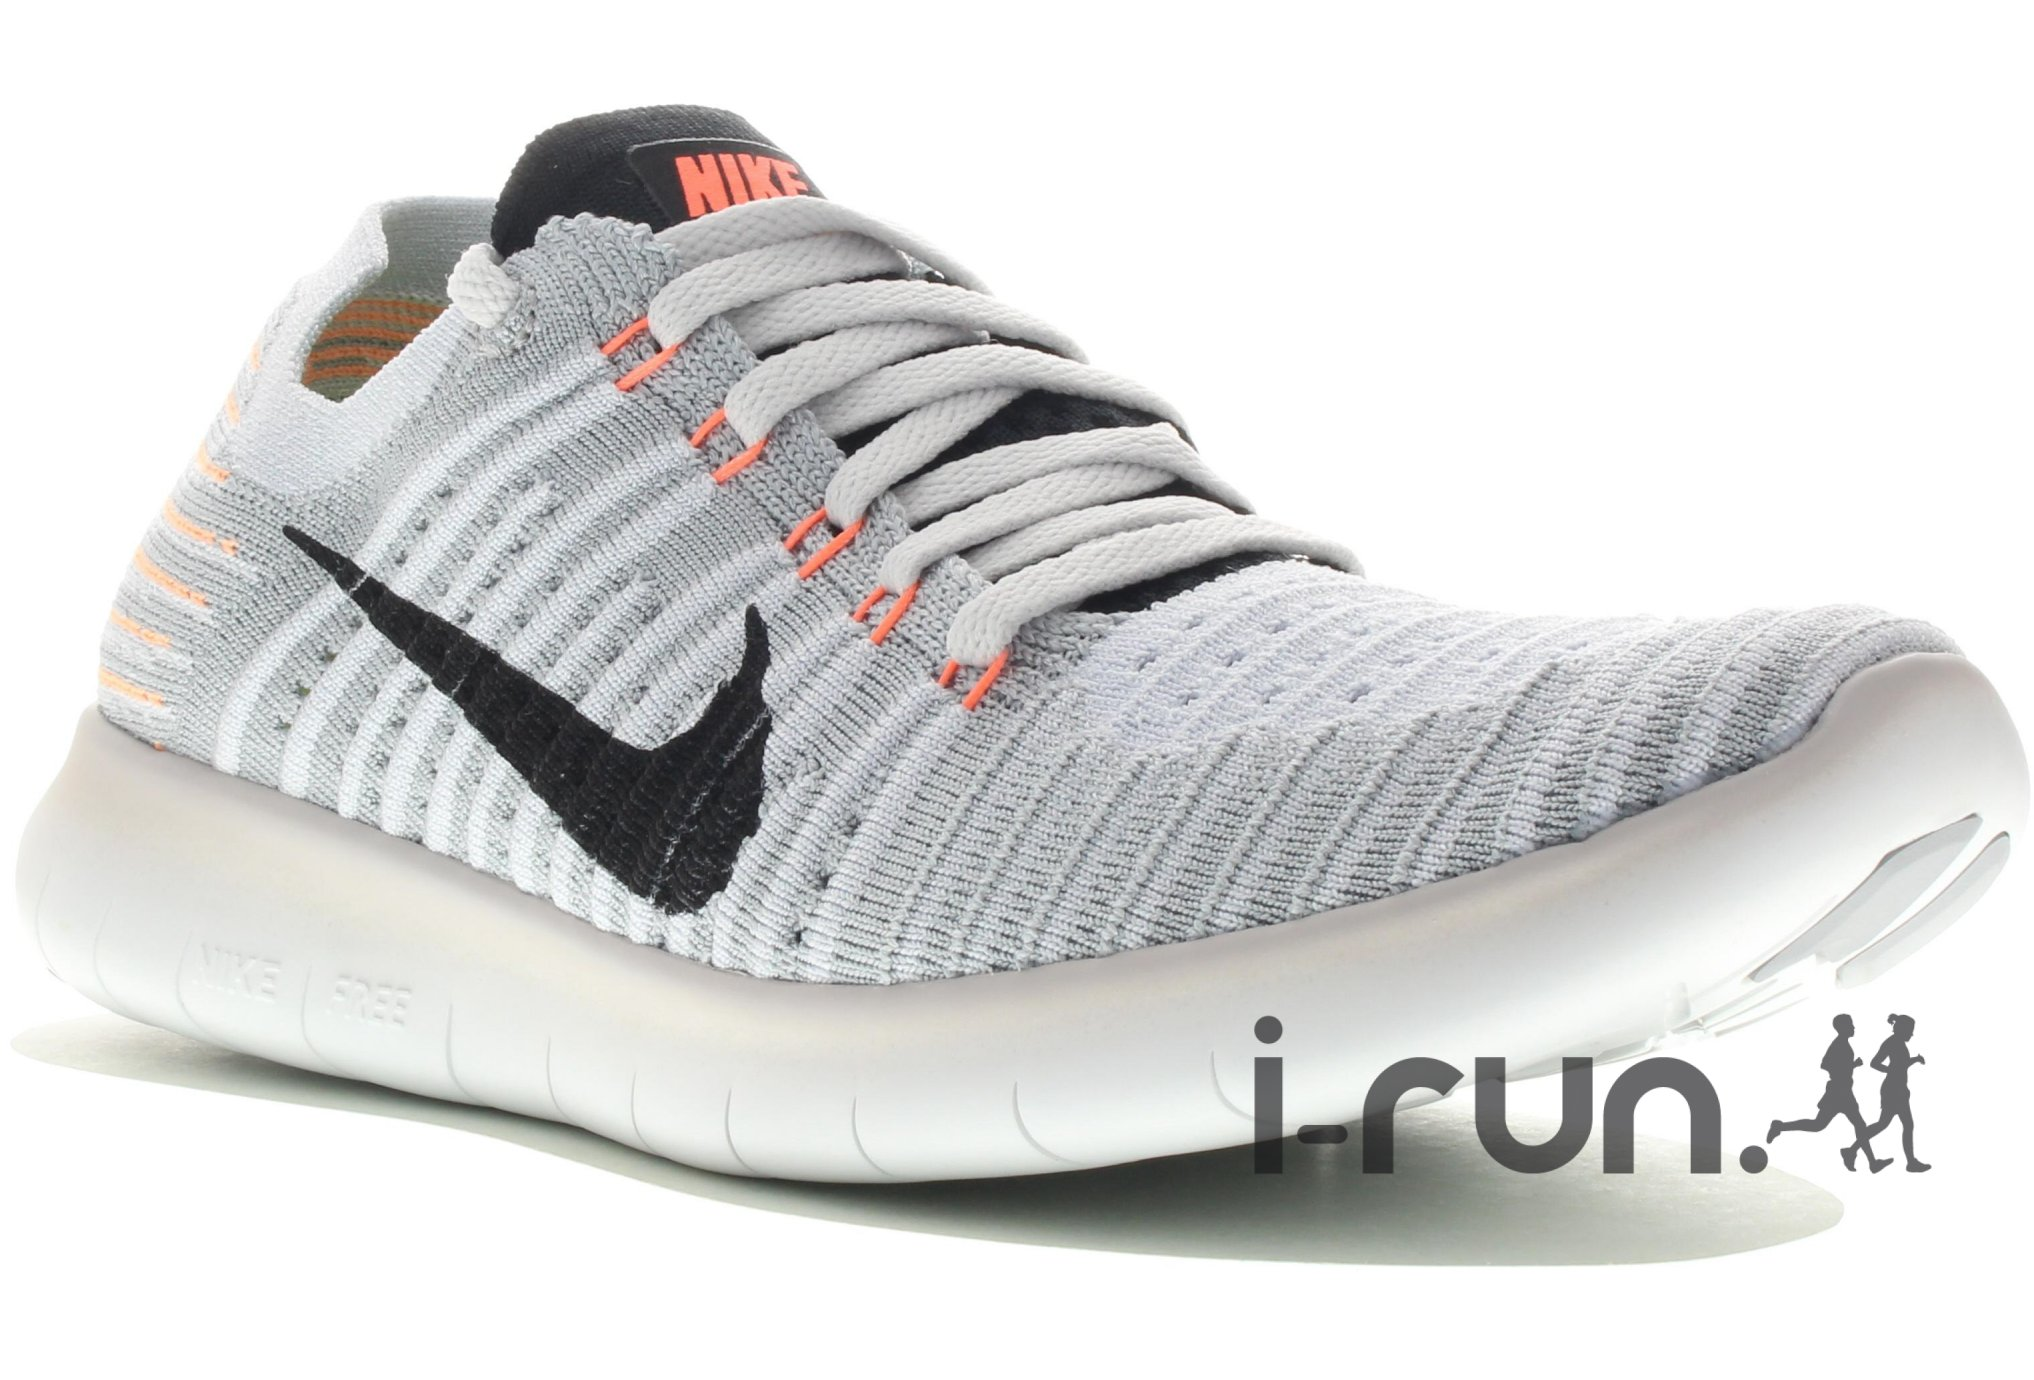 new arrivals 9268d af8c8 Stephane Free Rn Flyknit W Chaussures 2017 Nike Motion Gournay rZar6g